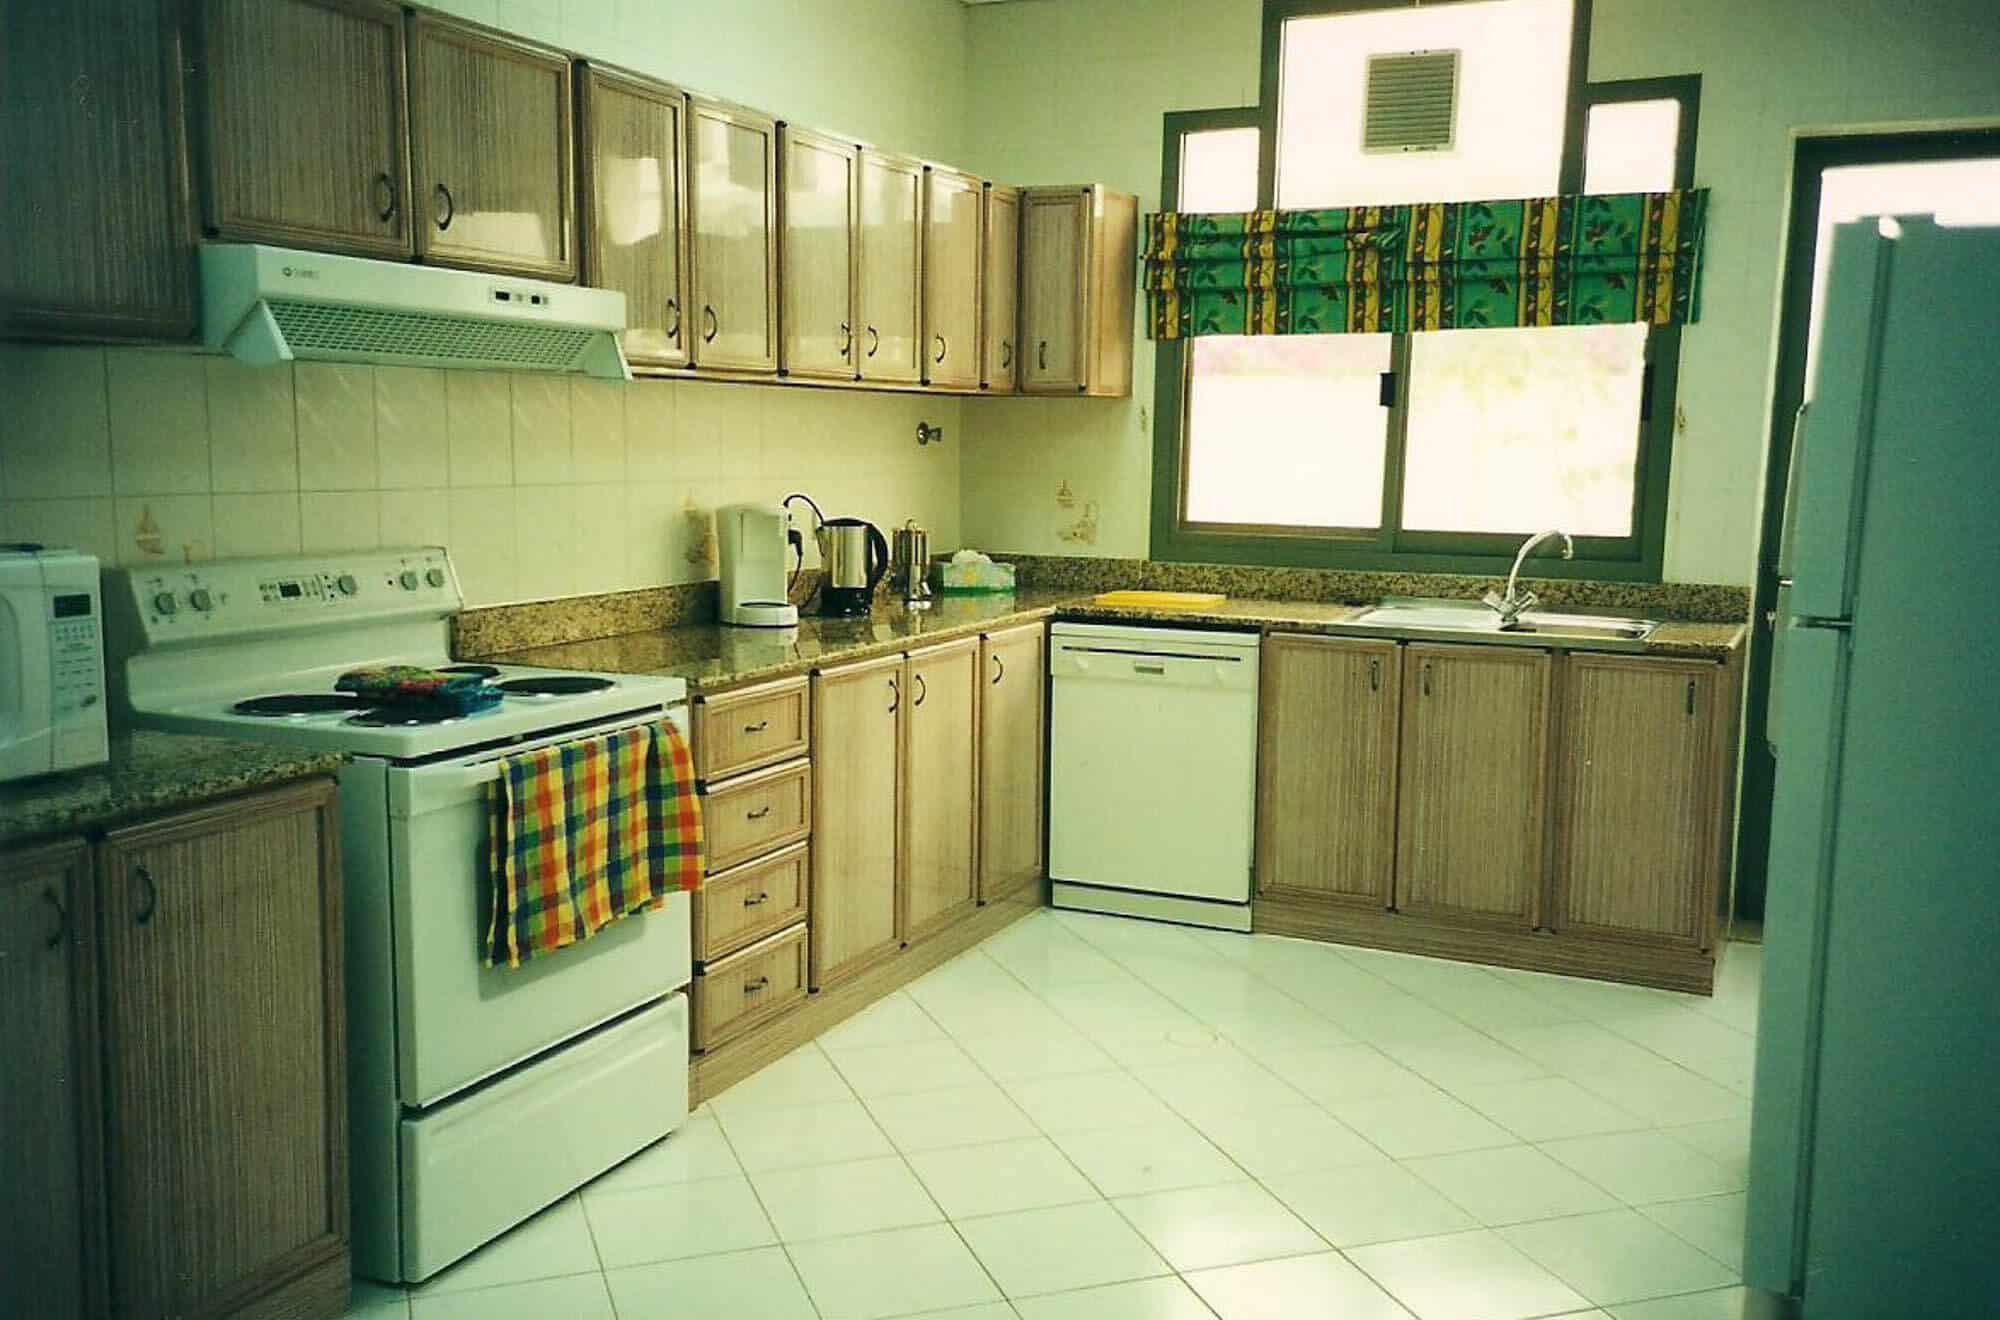 Trend A kitchen like this can easily be upgraded at minimal cost